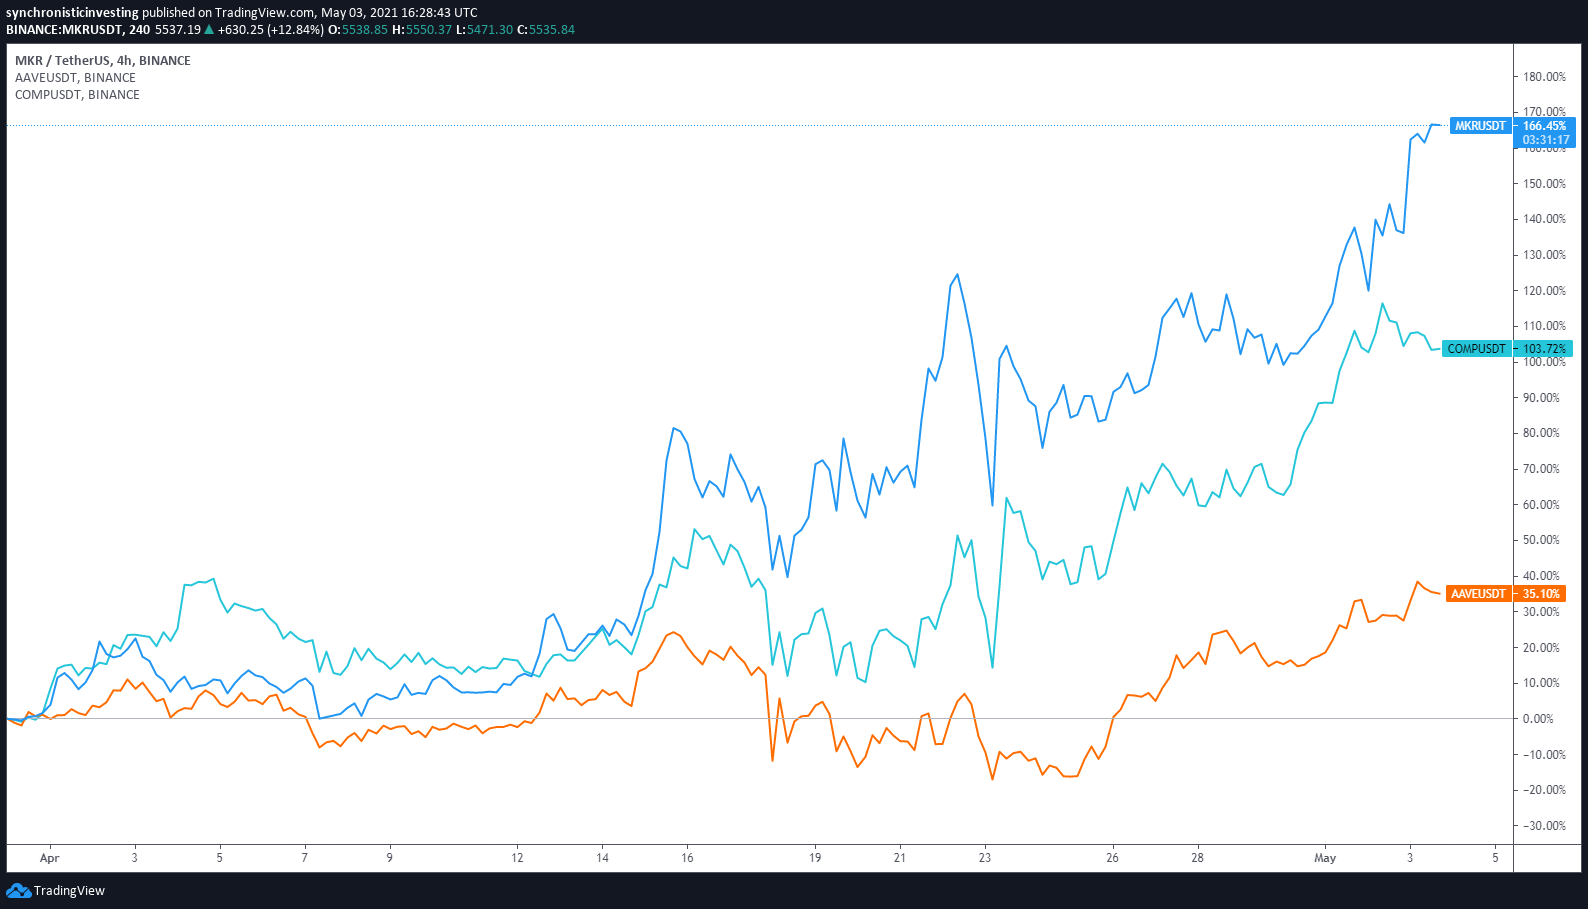 DeFi resurgence lifts Maker, Aave and Compound price to new highs